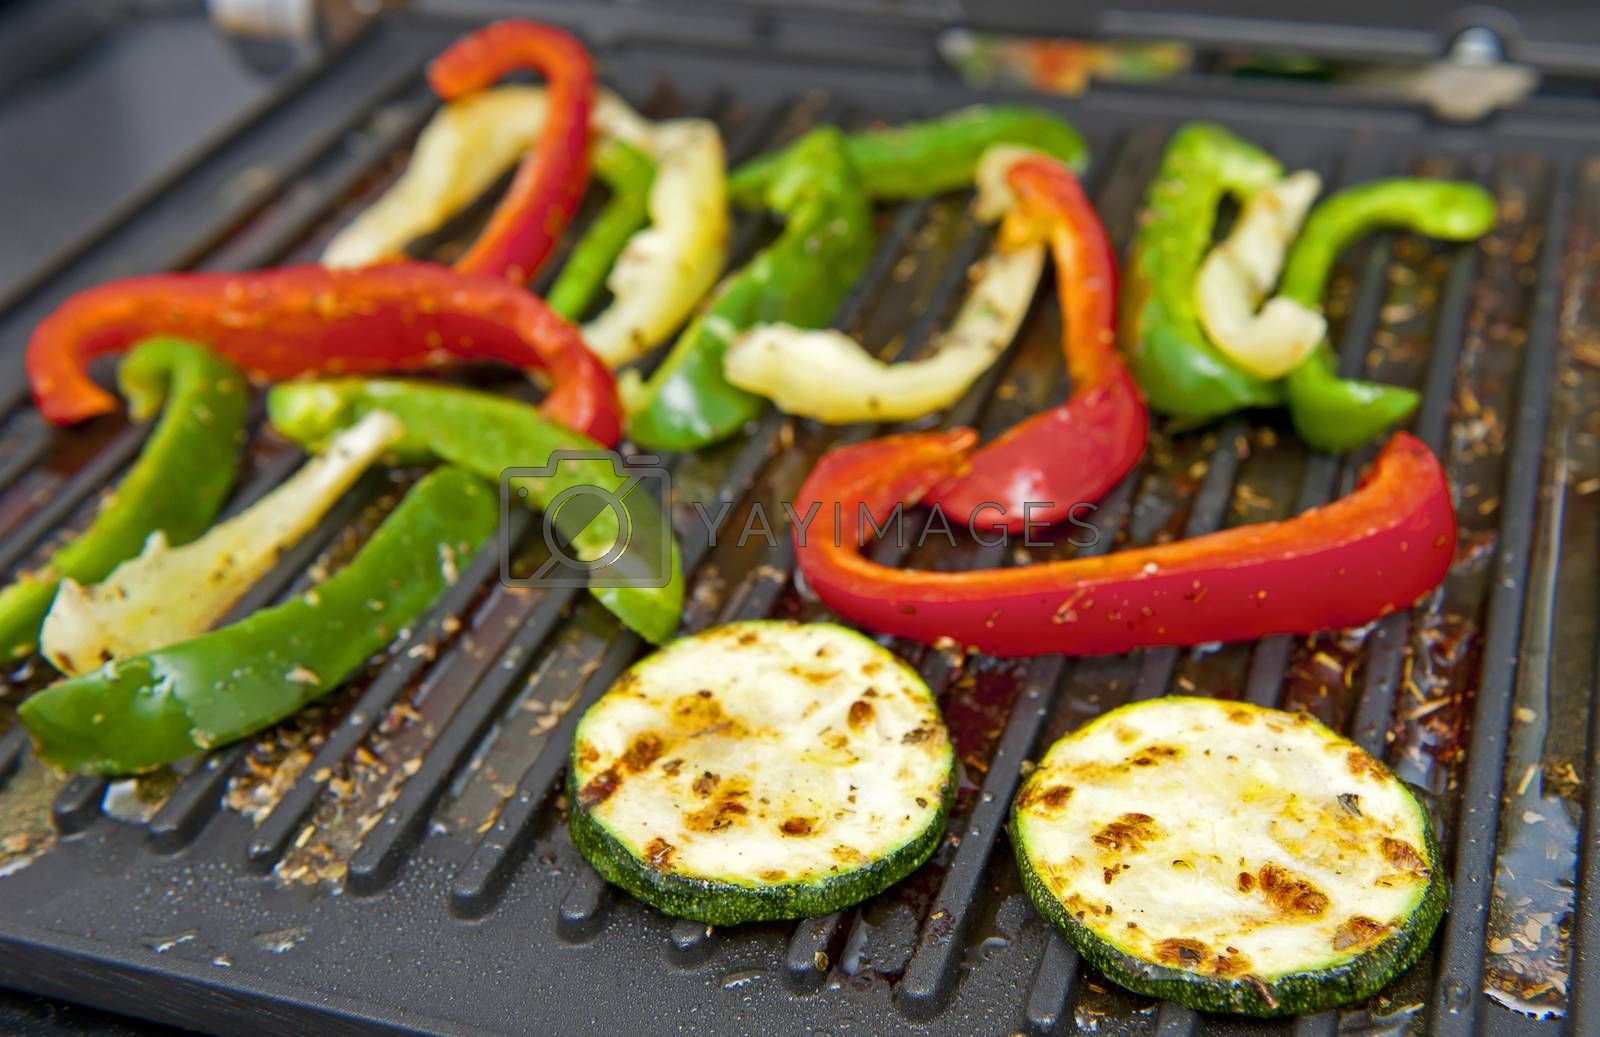 Courgette and pepper on the grill